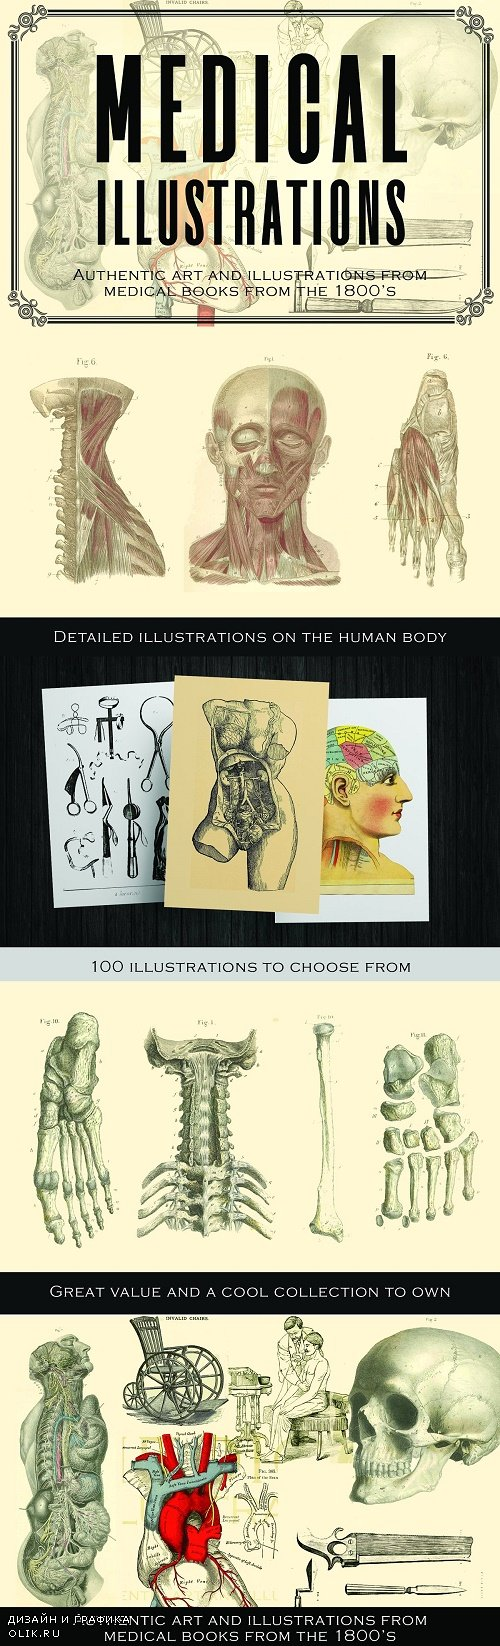 100 Vintage Medical Illustrations - 3896654